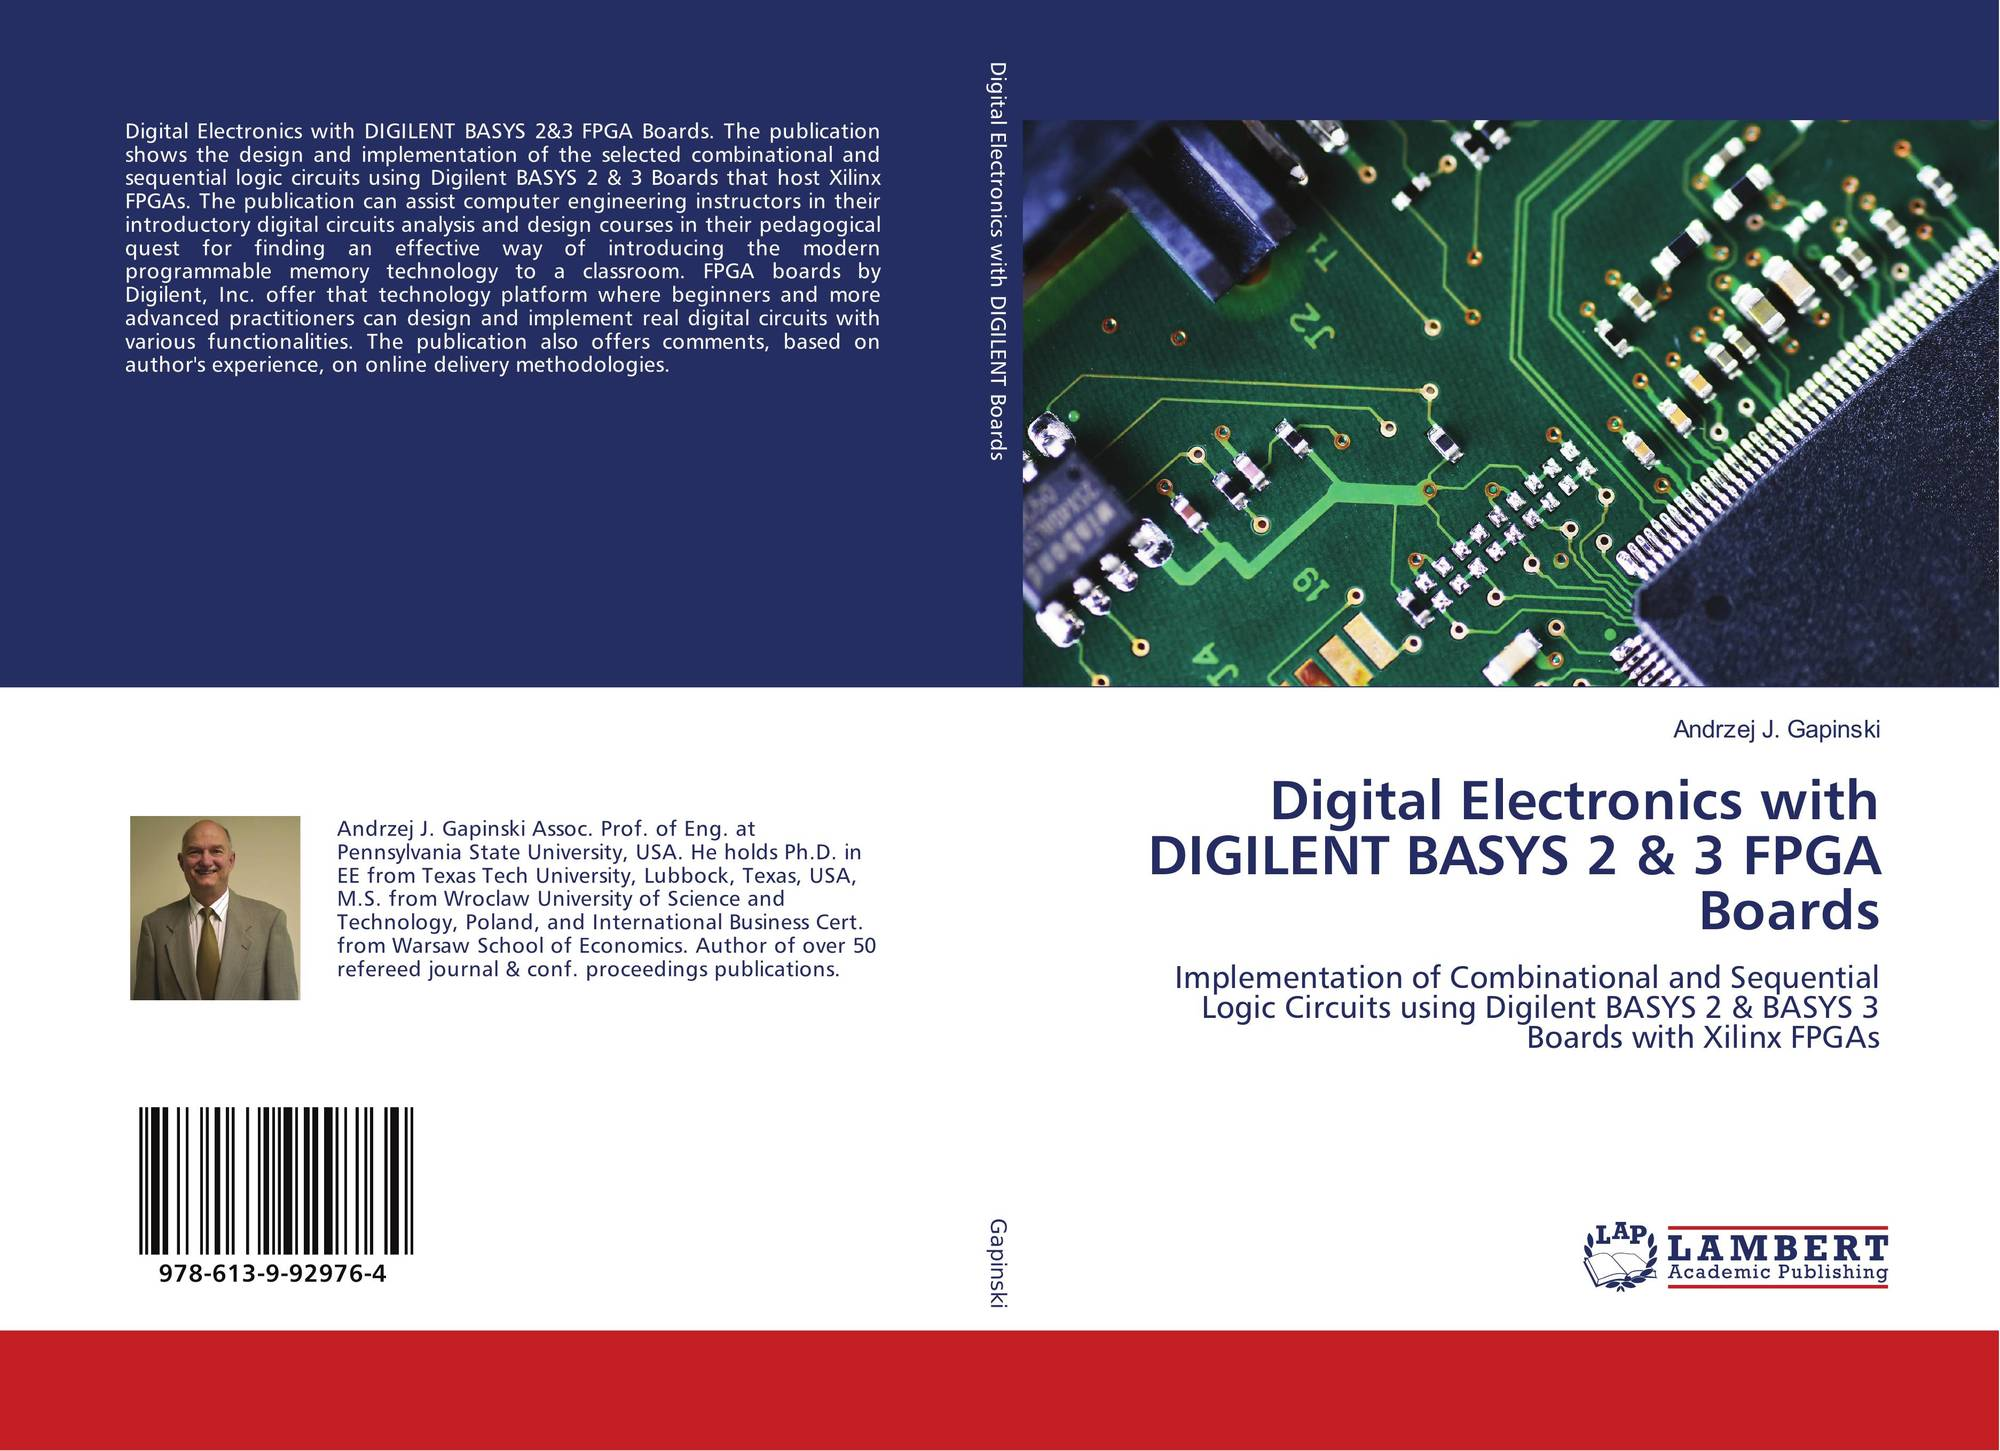 Digital Electronics with DIGILENT BASYS 2 & 3 FPGA Boards, 978-613-9